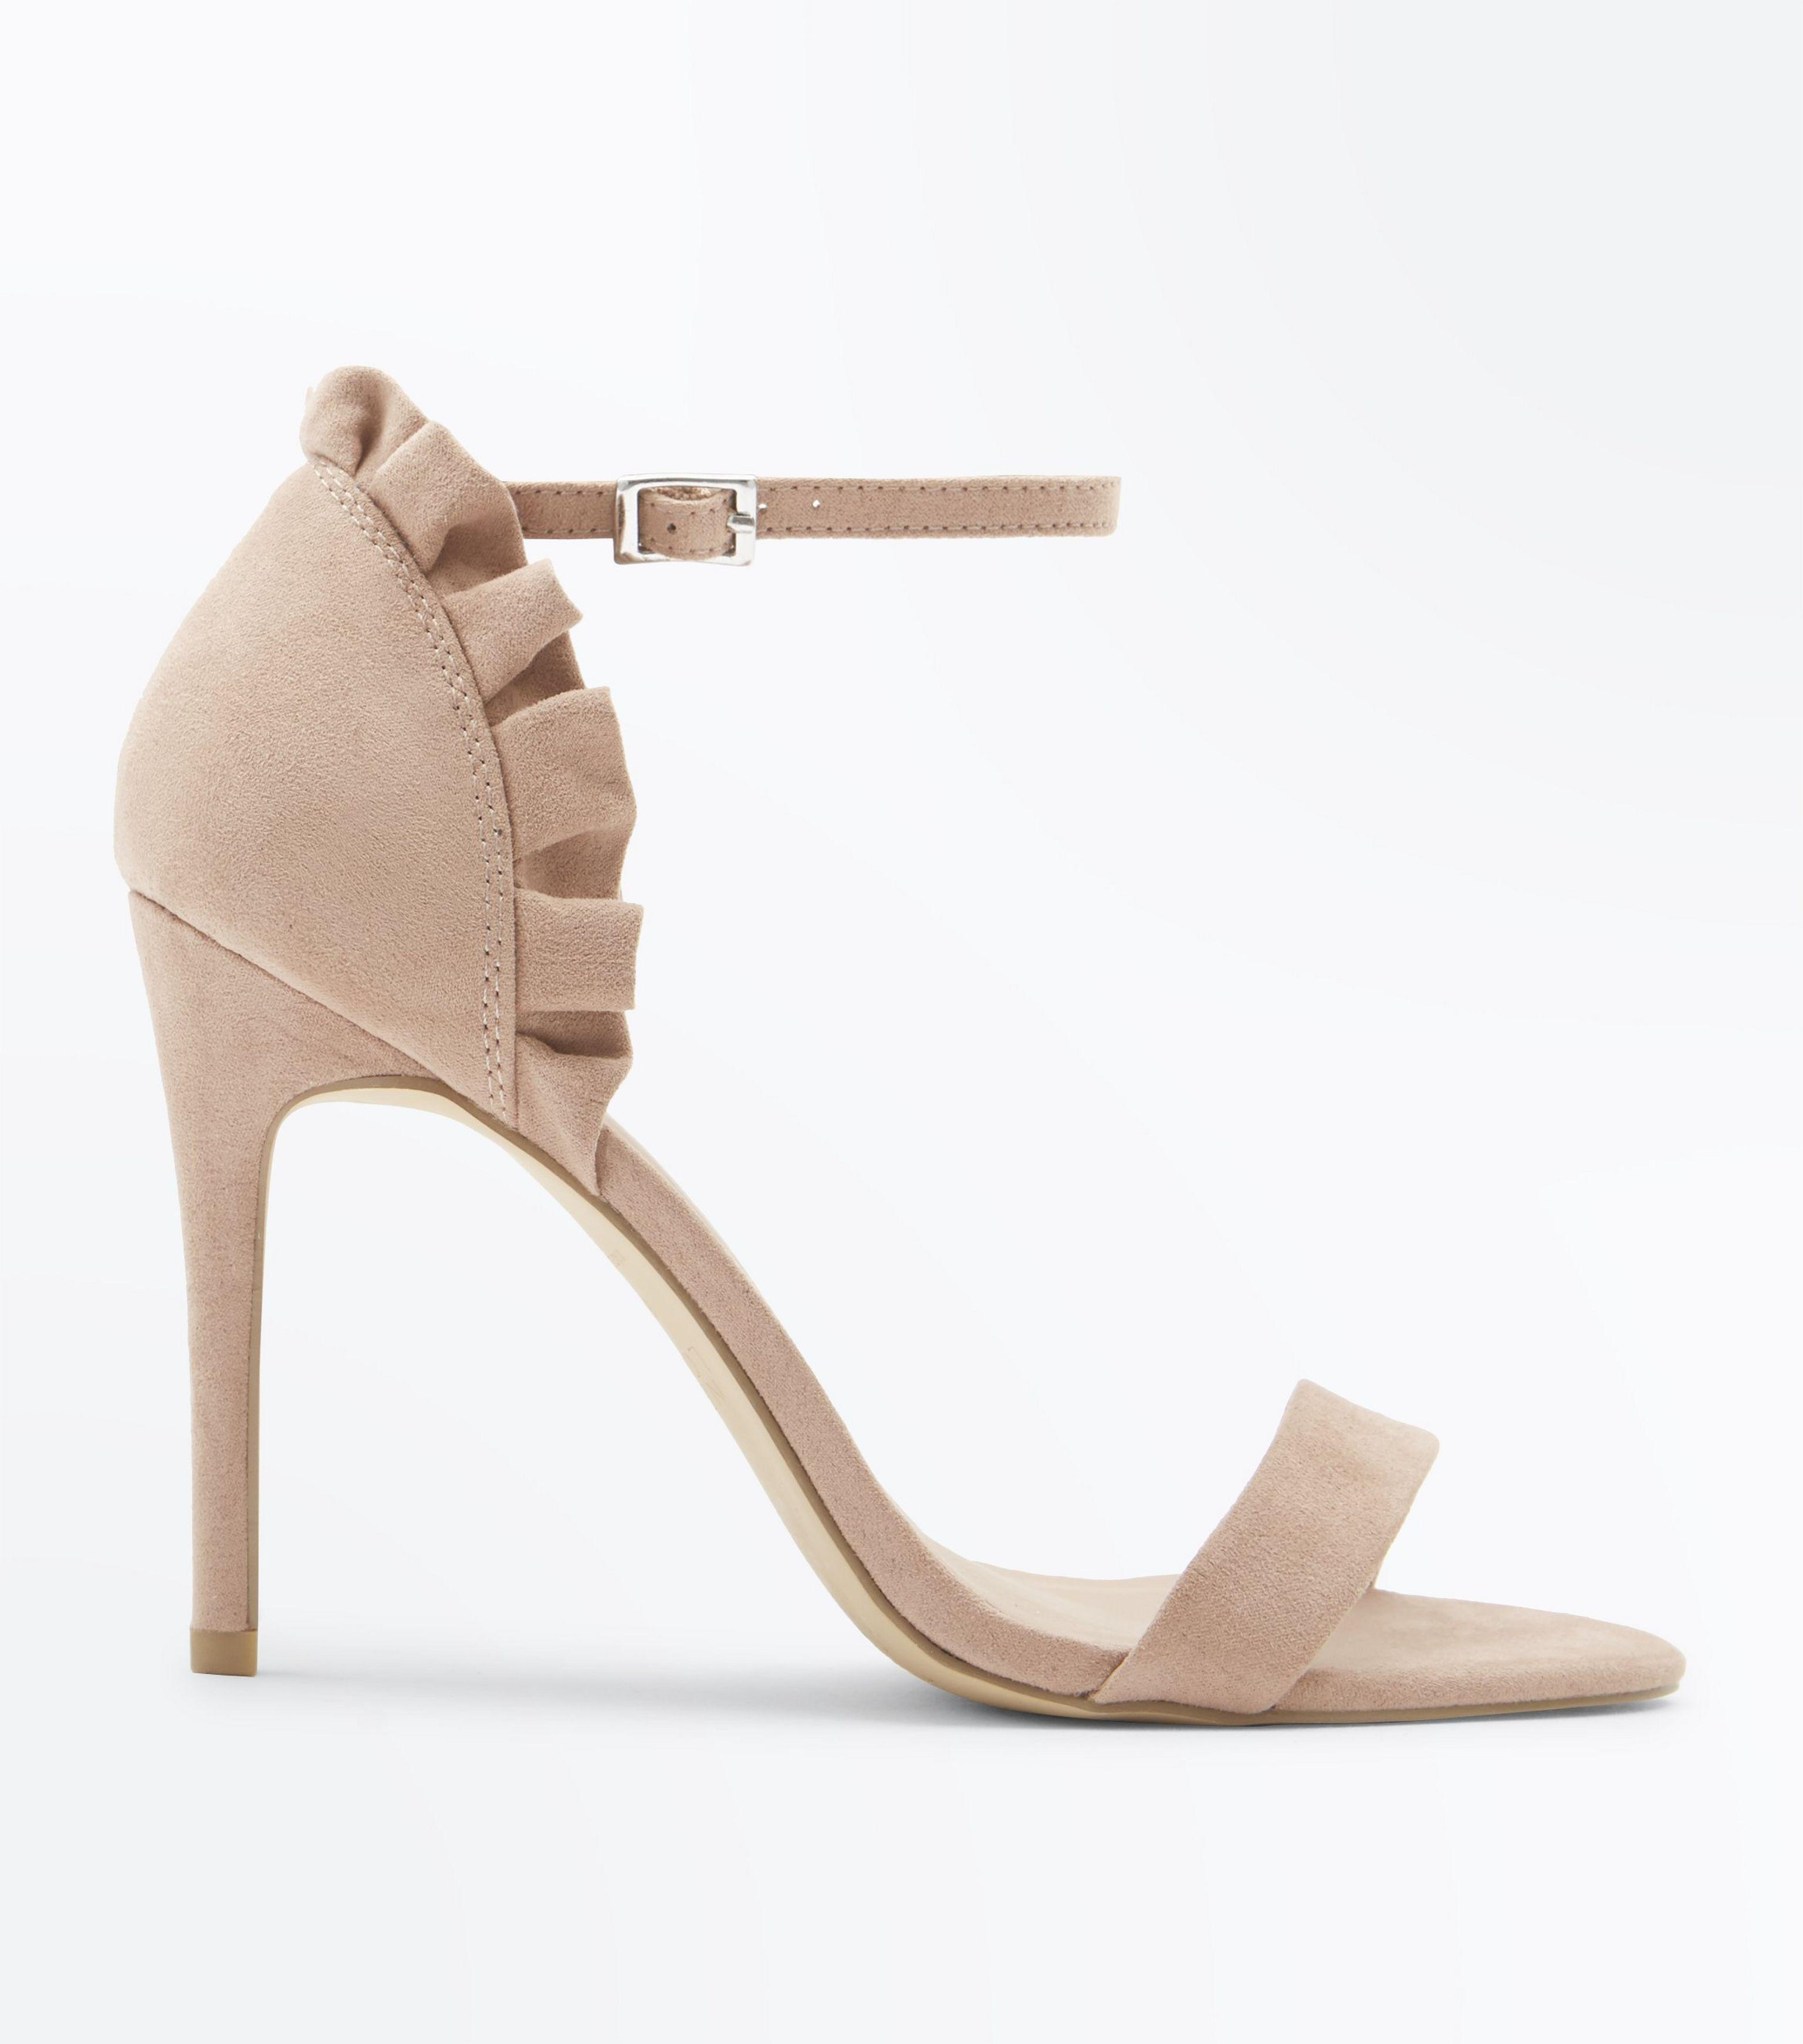 445b3665ec New Look Nude Suedette Frill Back Stiletto Heel Sandals in Natural ...